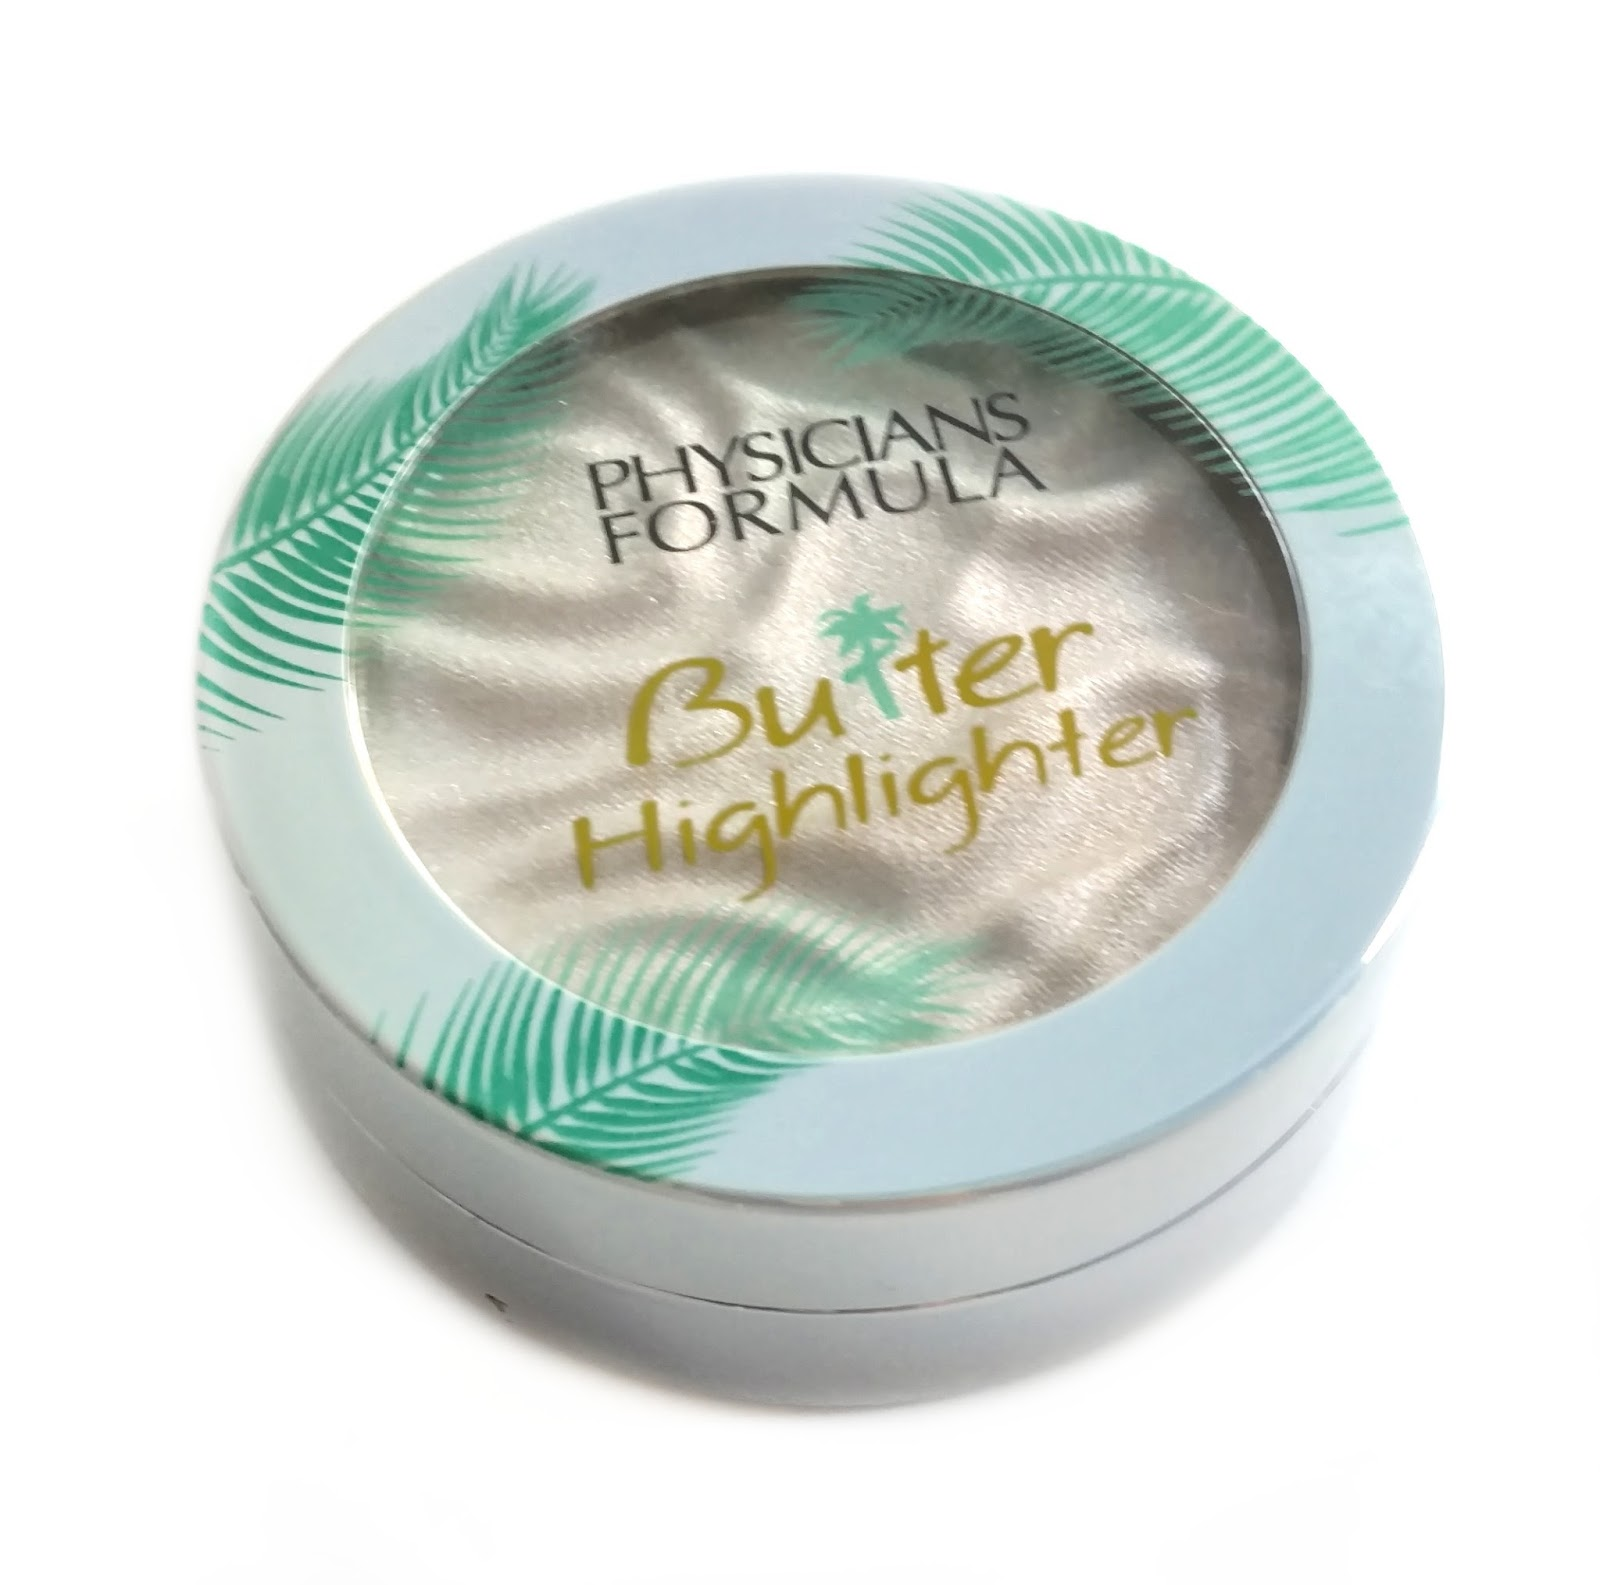 physicians formula butter highlighter review